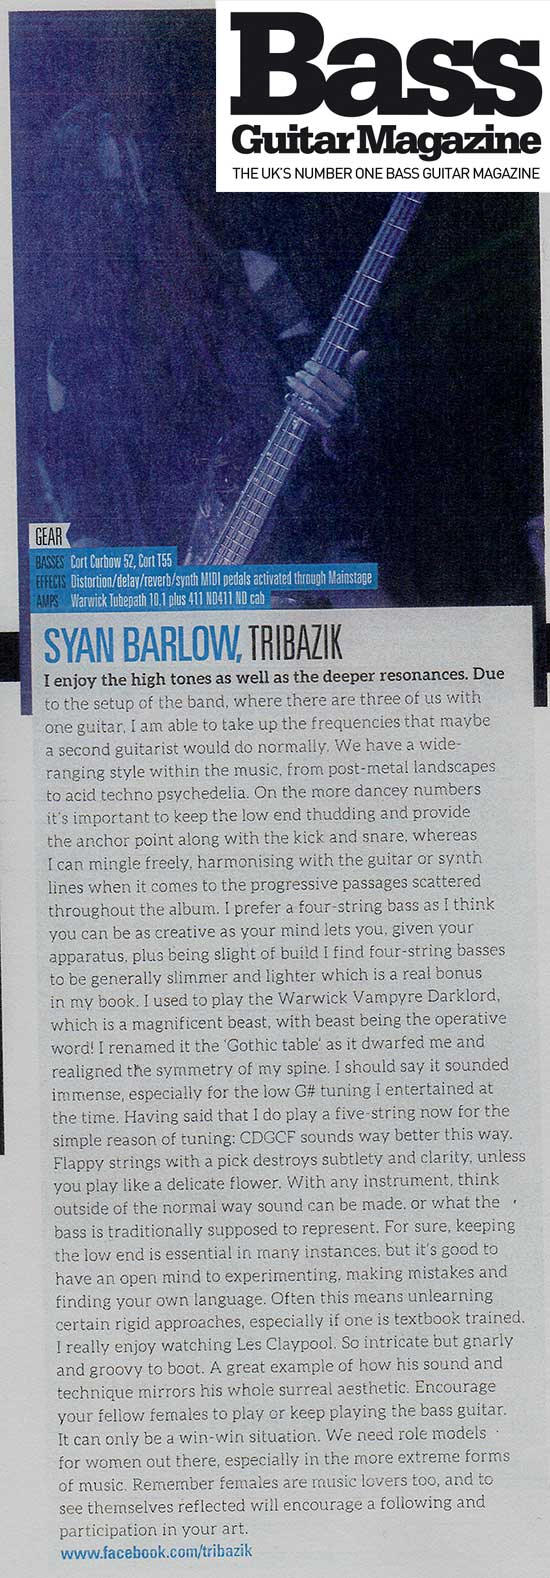 Tribazik bass guitar magazine